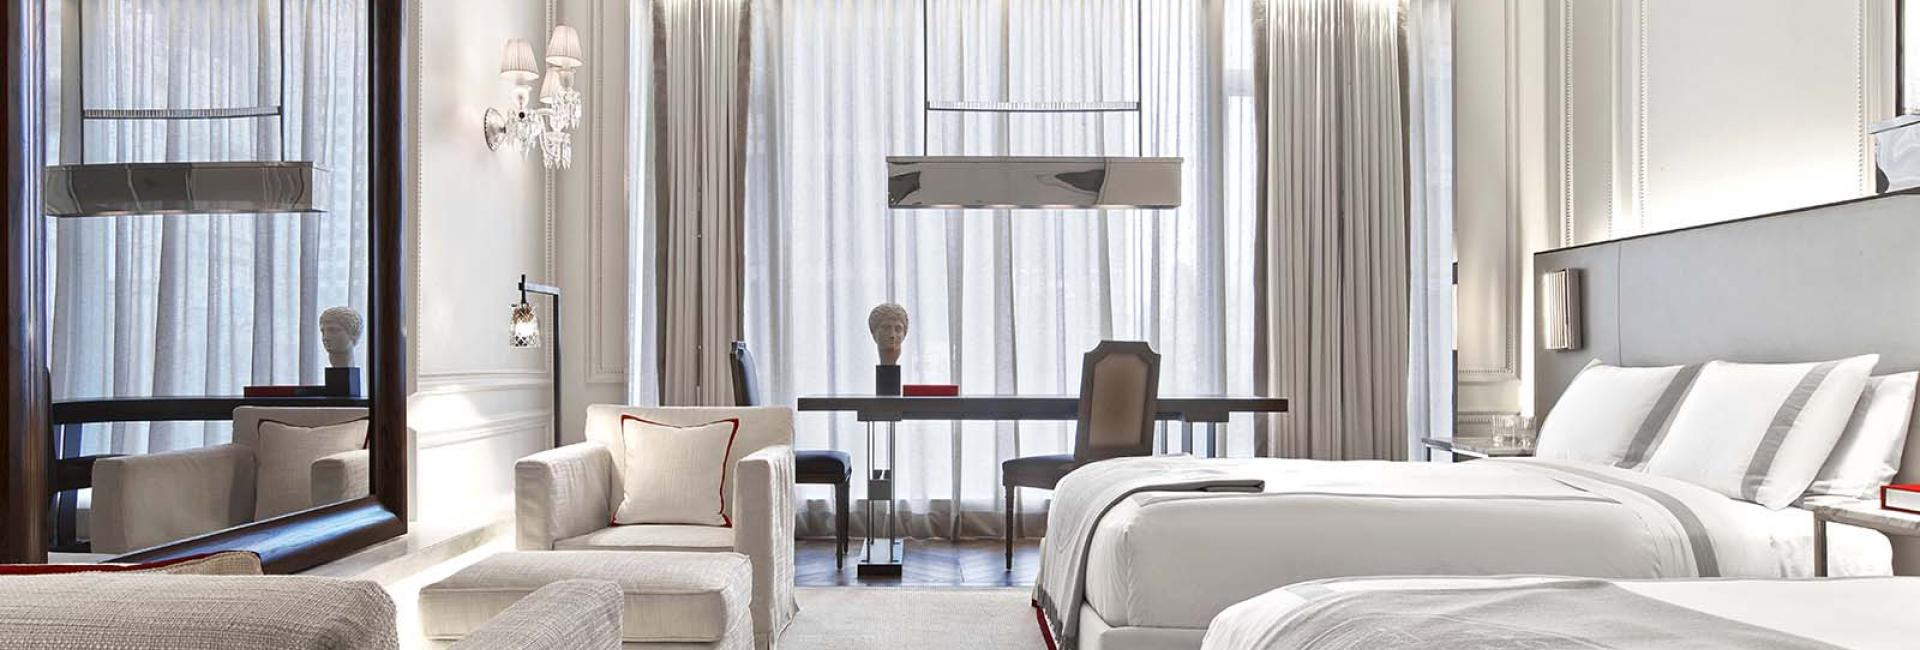 The Grand Classic Double guest suite at Baccarat hotel